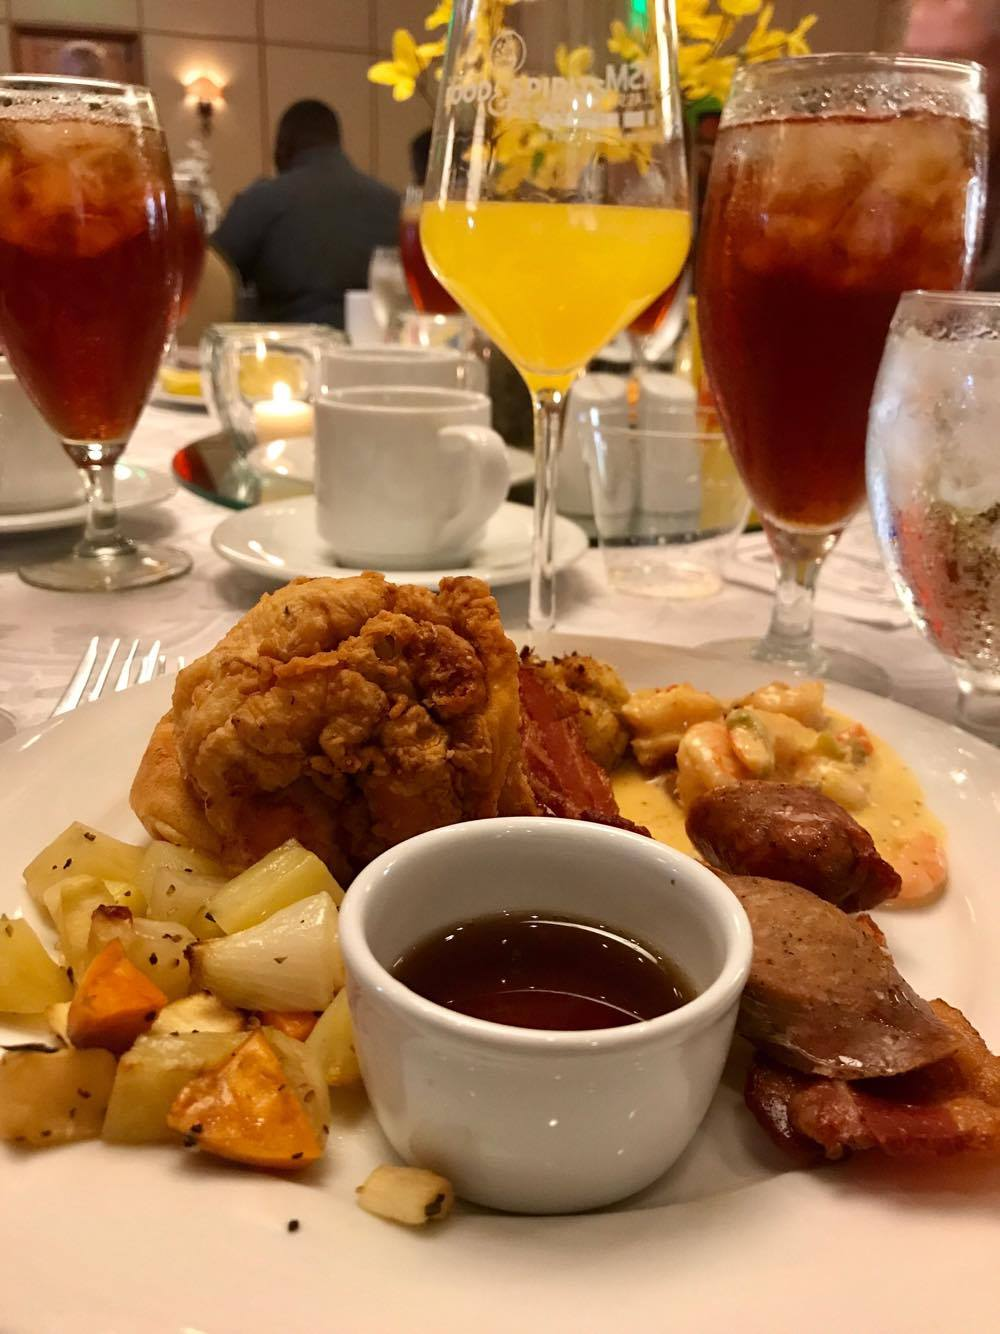 Spritual Brunch - Breakfast Food - St Simons Island Food Spirits Festival